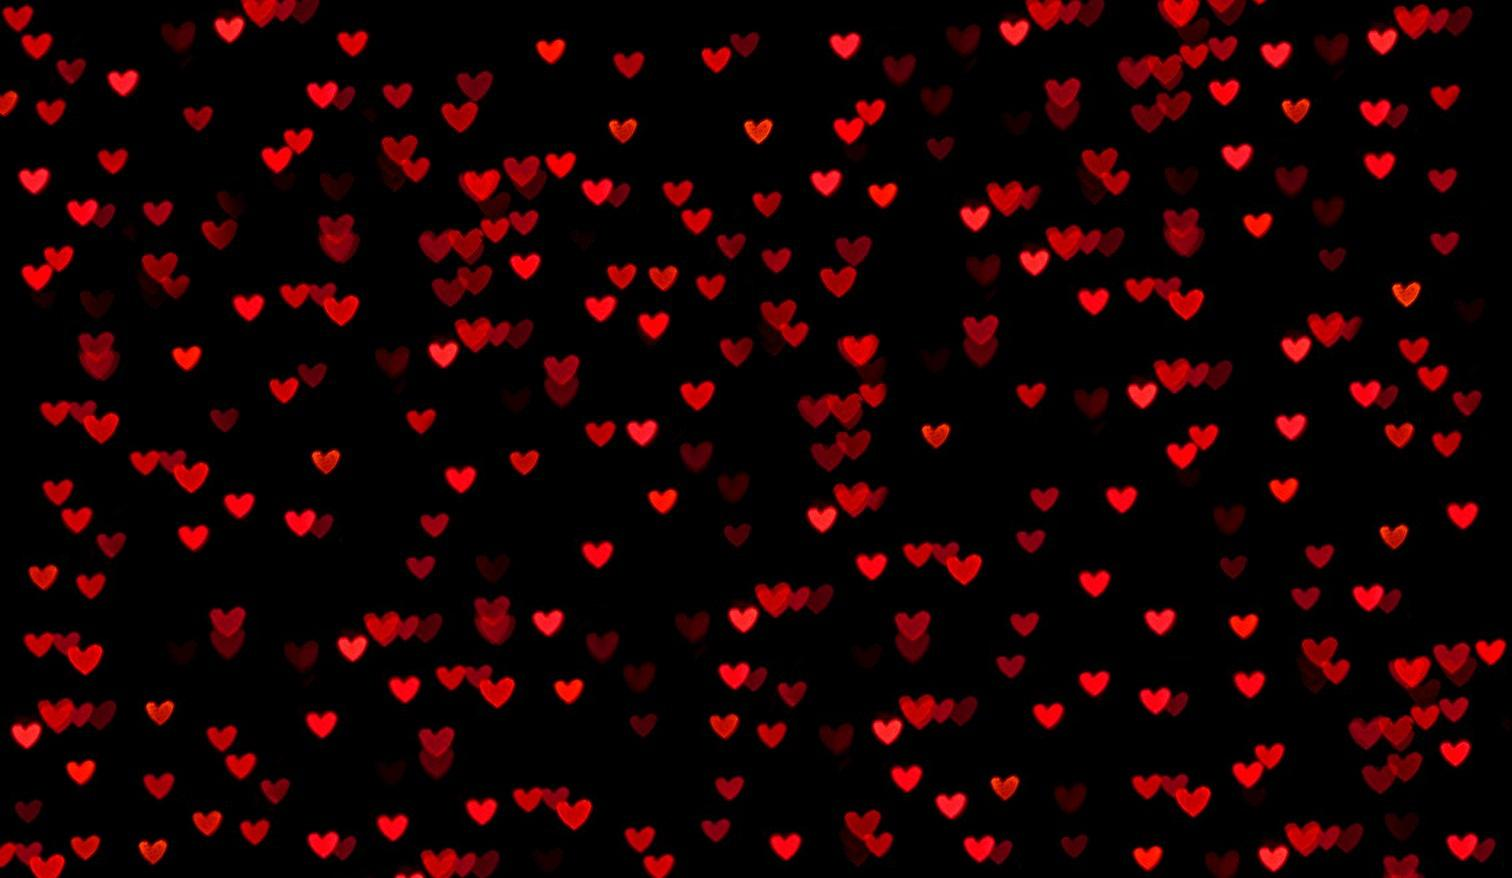 Black Red Love Wallpaper : Red Hearts Black Background - WallpaperSafari